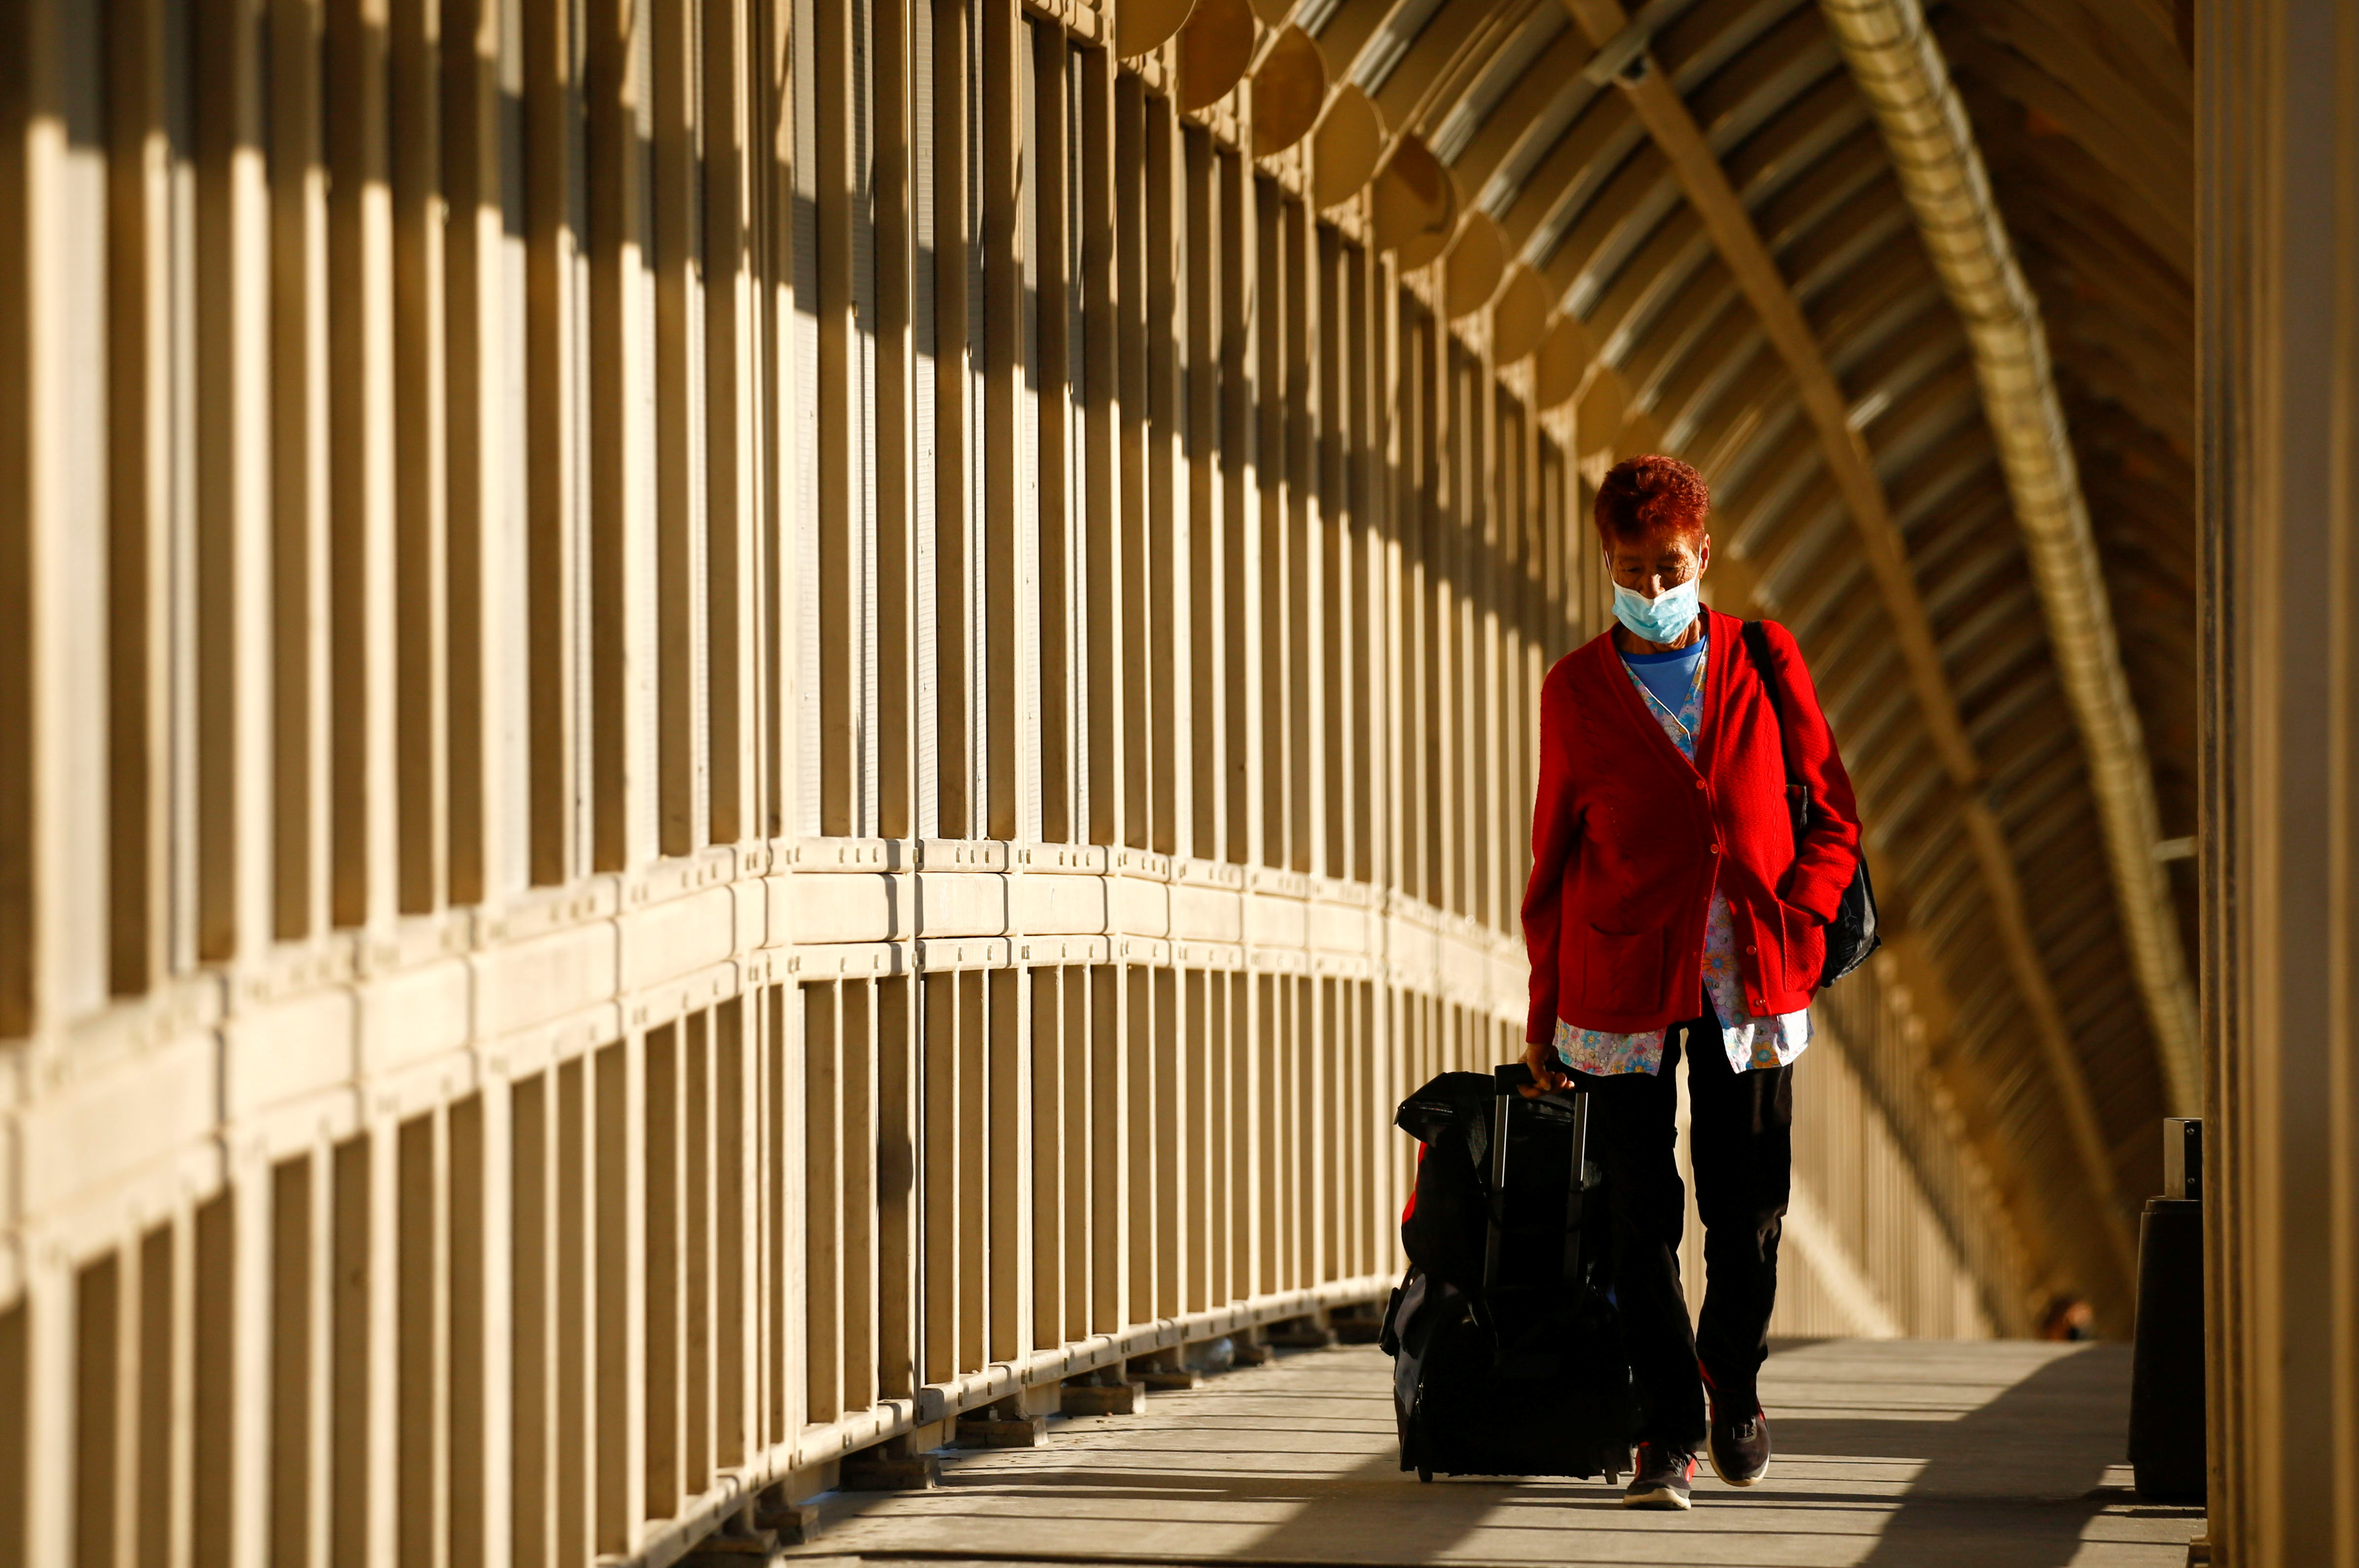 A woman wearing a protective face mask walks towards Mexico at the Paso del Norte International Border bridge after the U.S. Department of Homeland Security extended limits on non-essential travel at land ports of entry, as the coronavirus disease (COVID-19) outbreak continues, in Ciudad Juarez, Mexico May 18, 2021. REUTERS/Jose Luis Gonzalez/File Photo